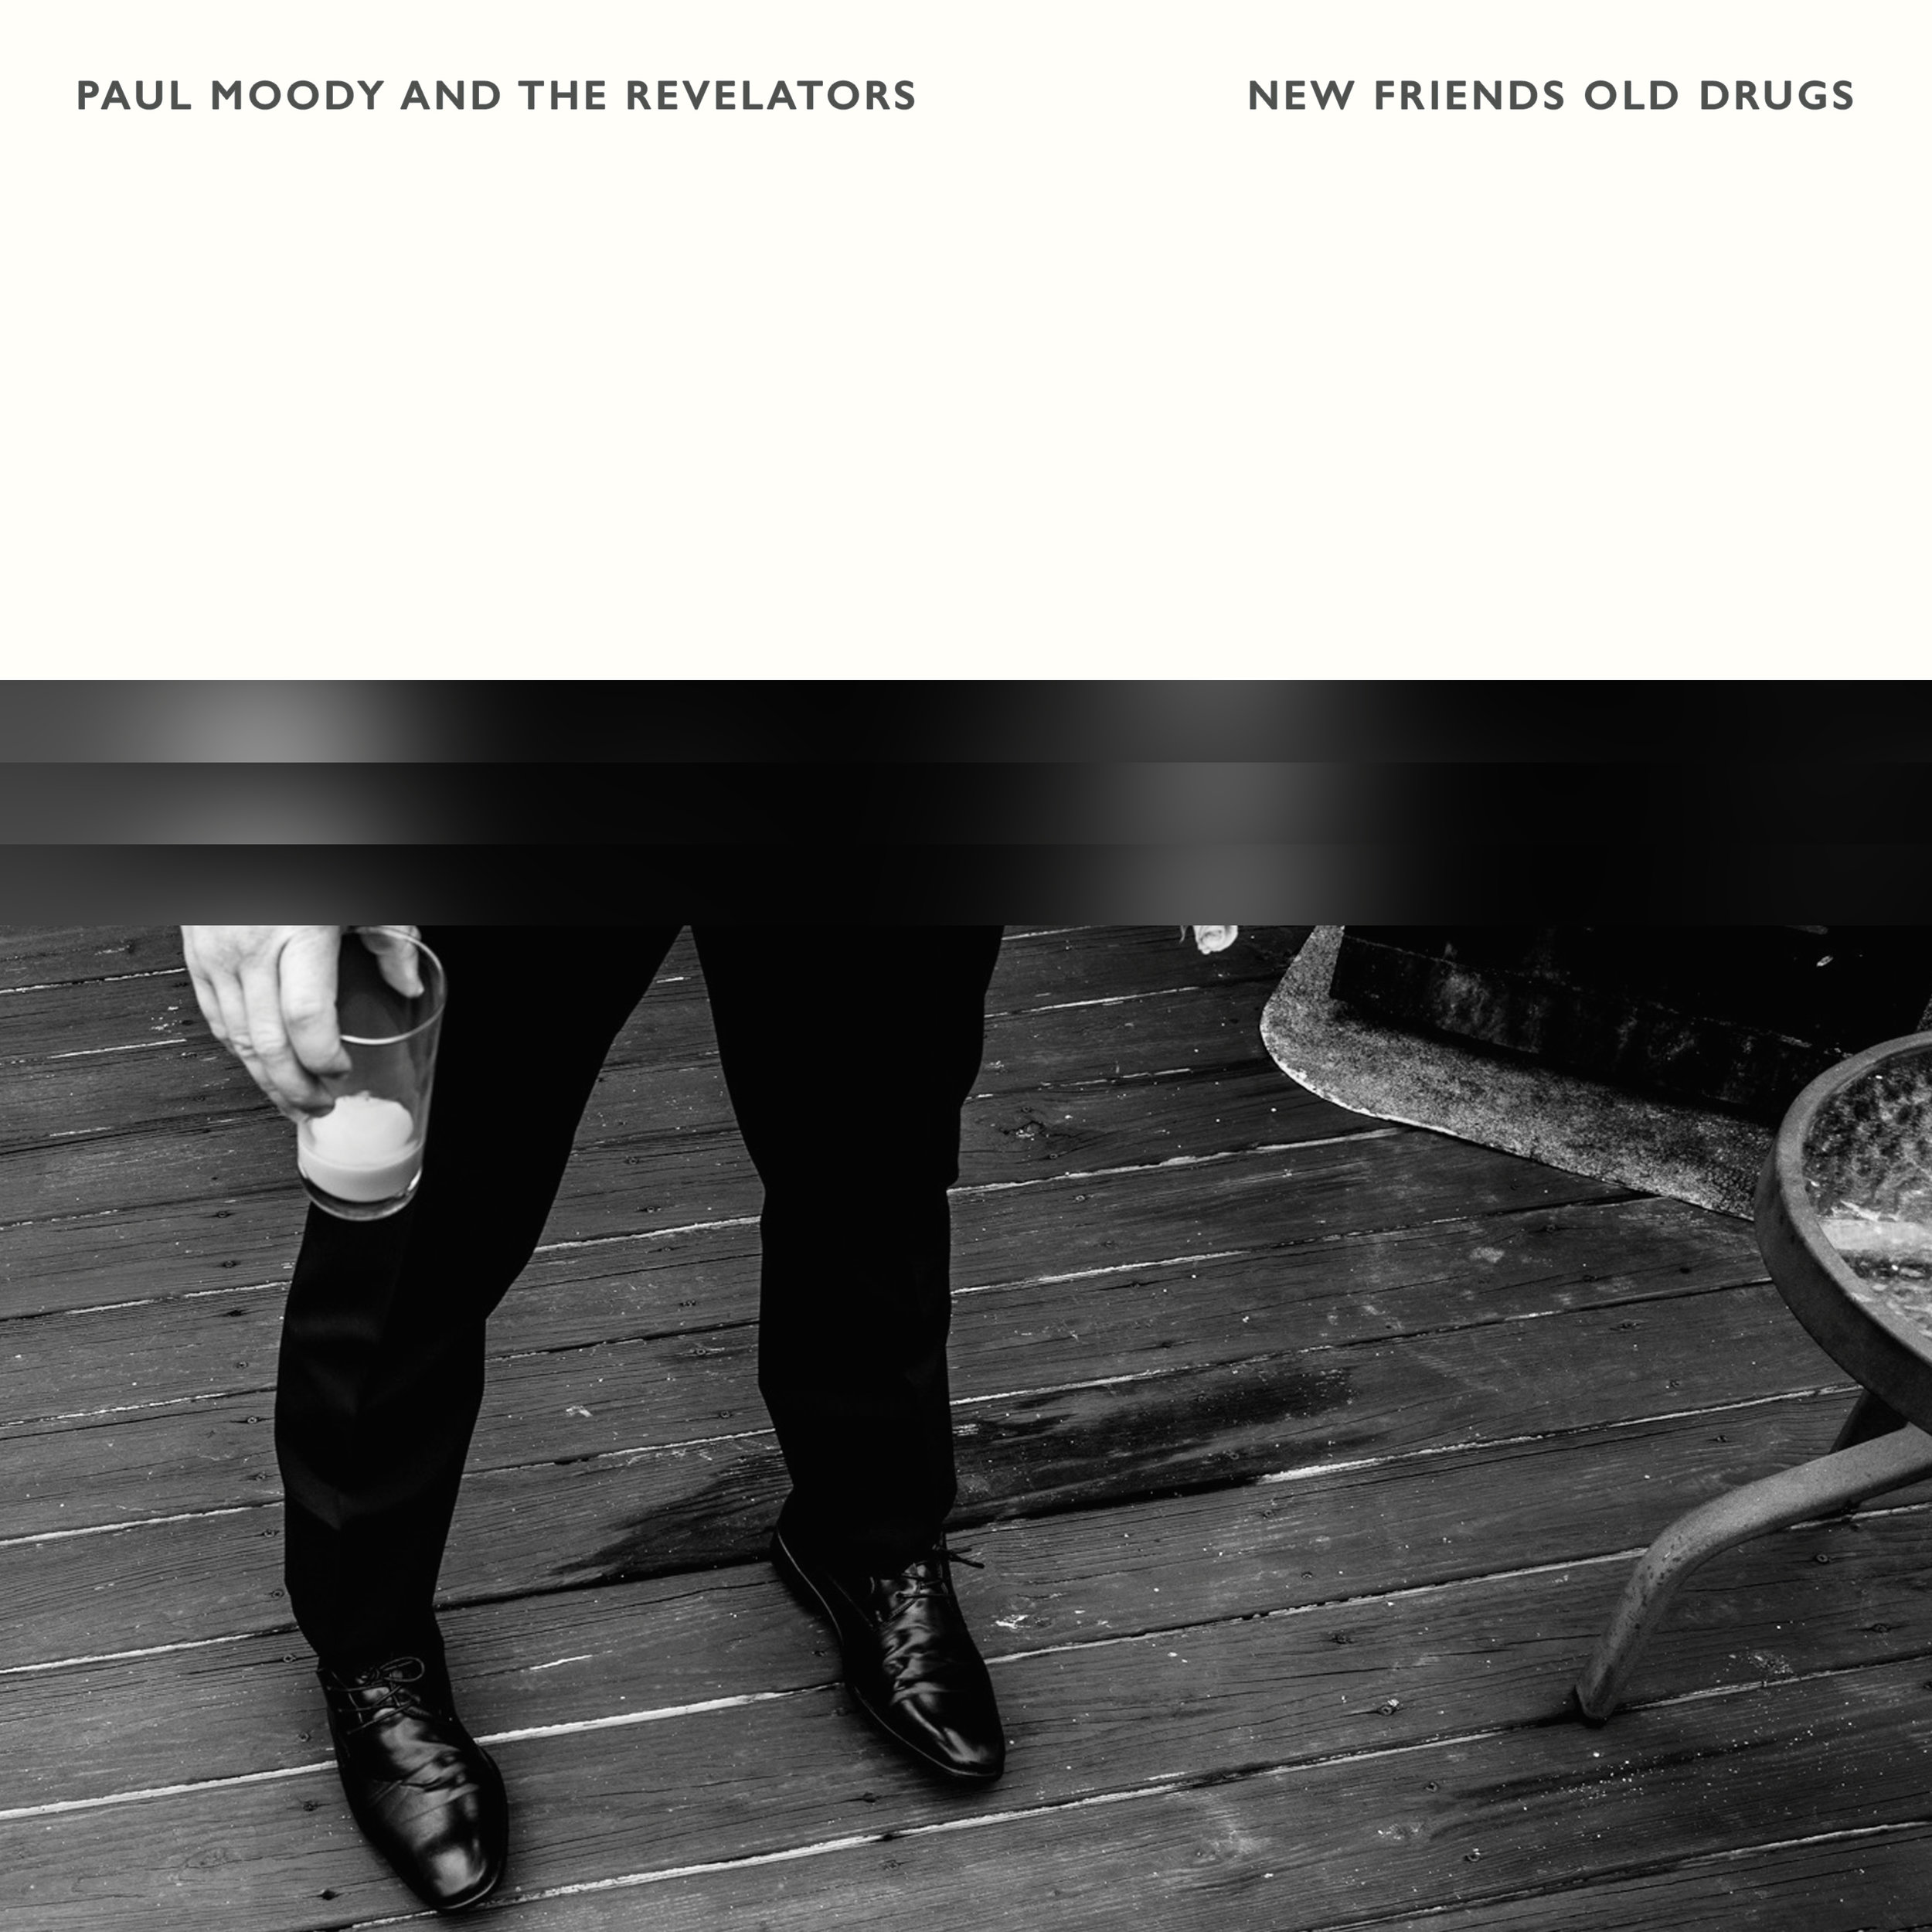 Paul Moody and the Revelators - New Friends Old Drugs